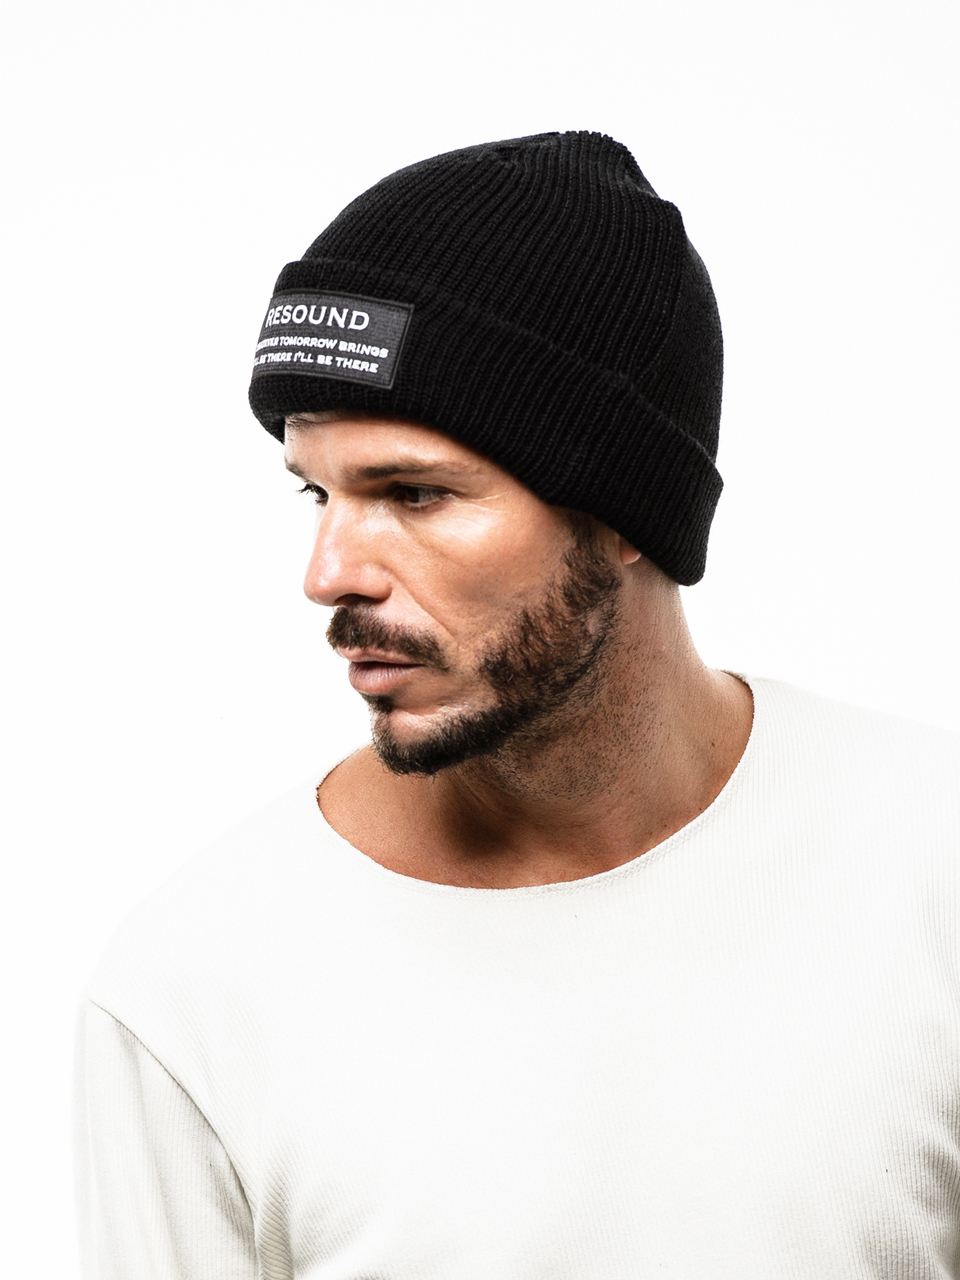 RESOUND CLOTHING (リサウンドクロージング) WOOL KNIT CAP / WAPPEN BK RC18-A-002-1